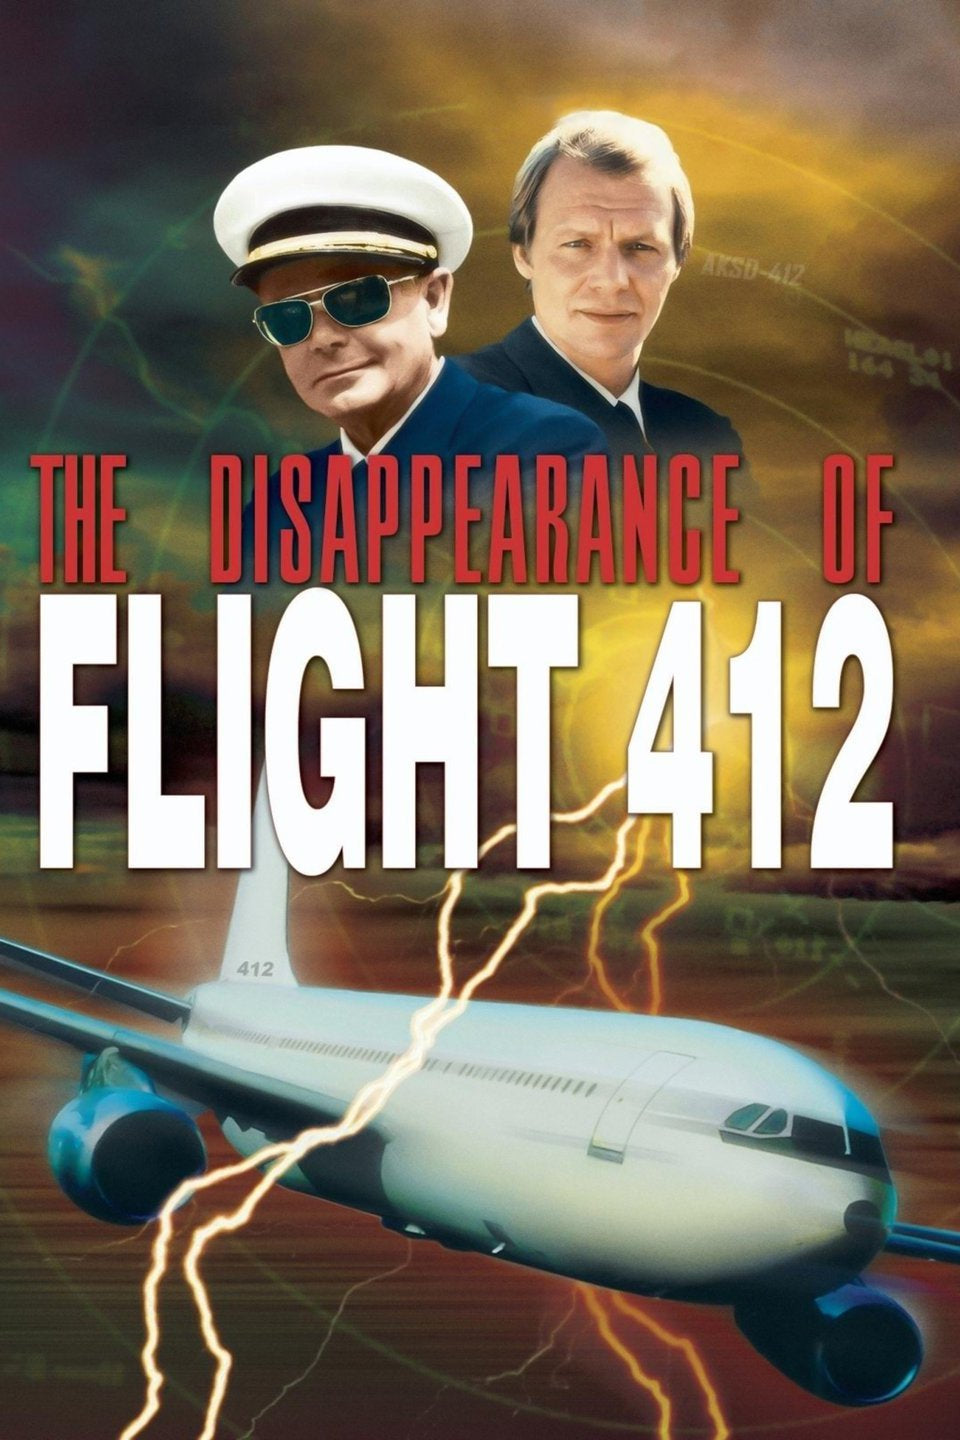 The Disappearance of Flight 412 Dvd (1974)